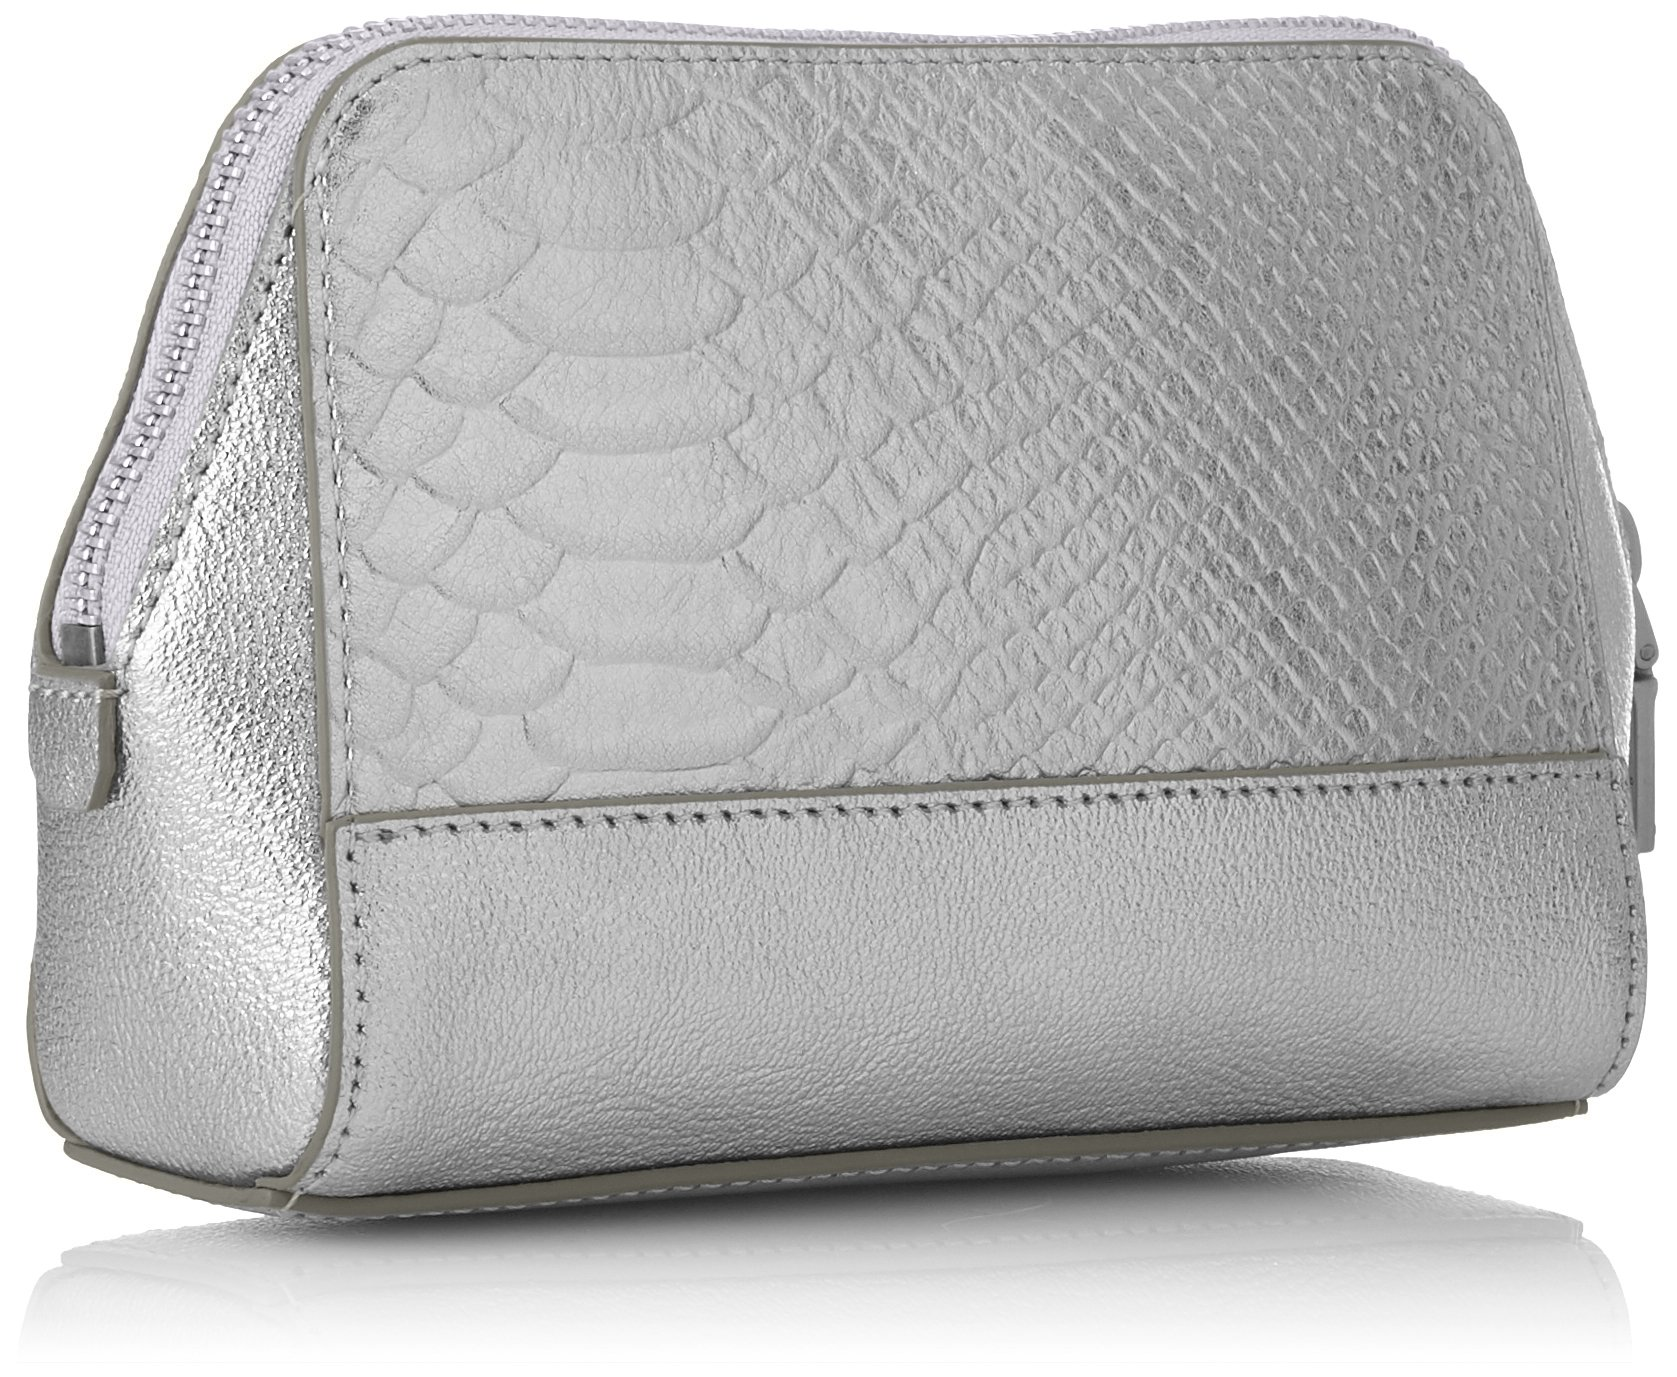 Liebeskind Berlin Women's Rhinebeck Metallic Leather Cosmetic Case, Silver by Liebeskind Berlin (Image #2)